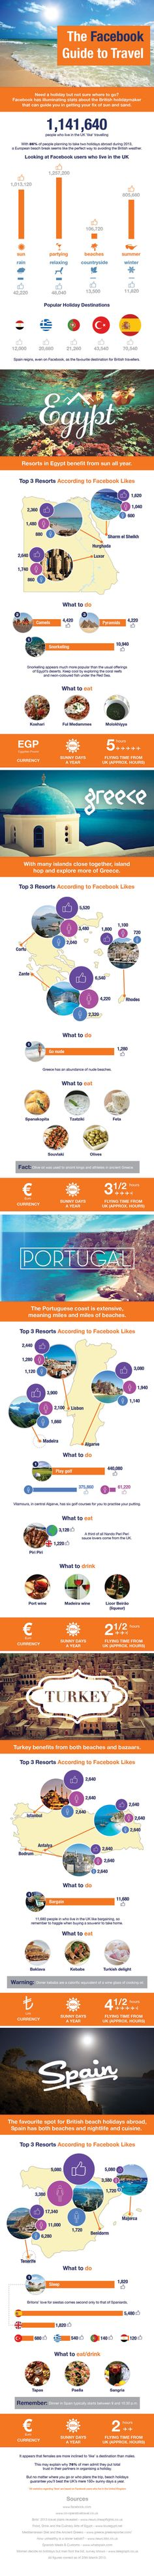 INFOGRAPHIC: The #Facebook Guide To #Travel